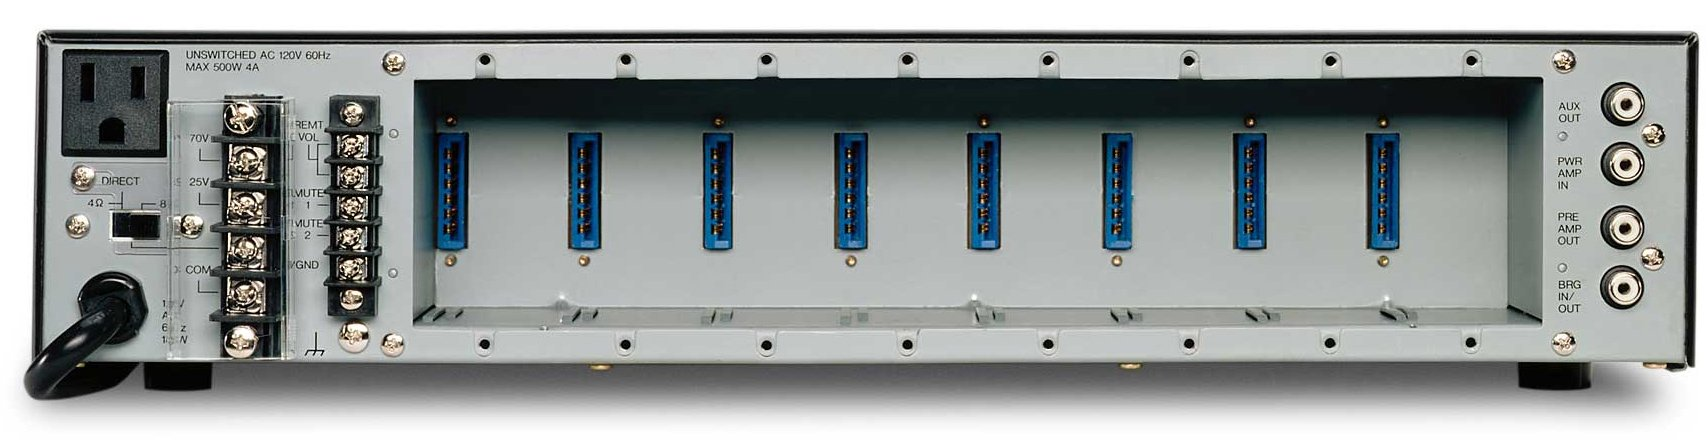 TOA A-903MK2 8 Channel Mixer Amplifier by Toa